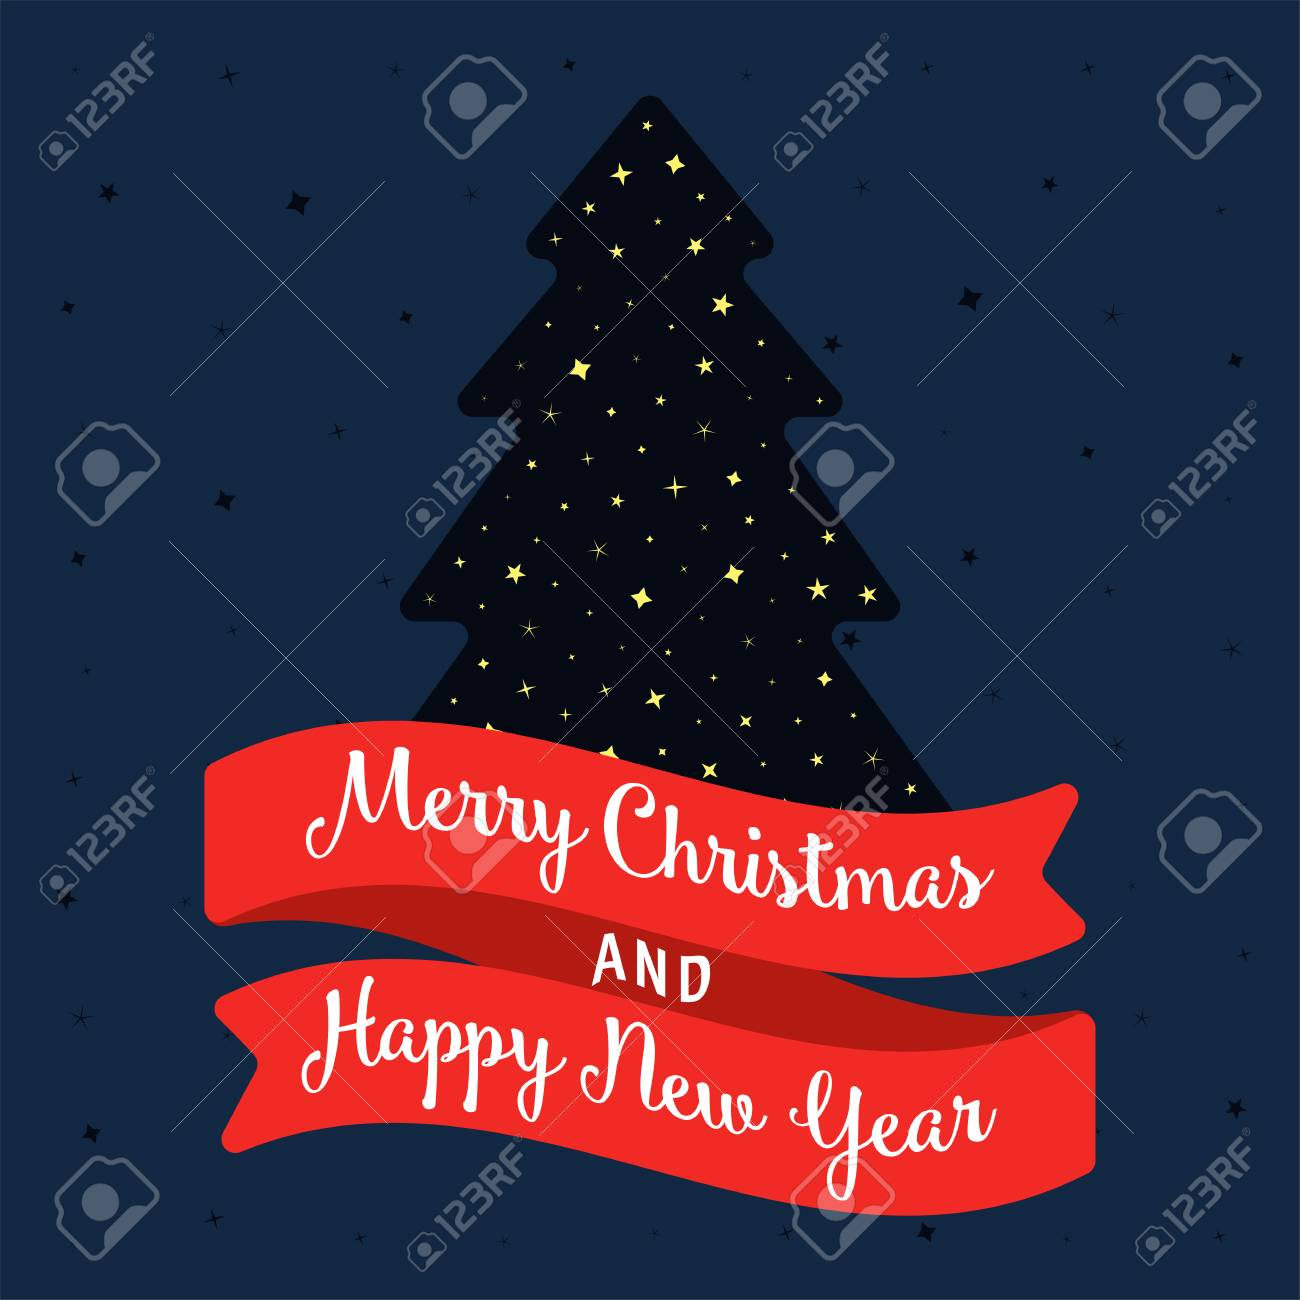 merry christmas and happy new year banner or greeting card with tree and stars vintage